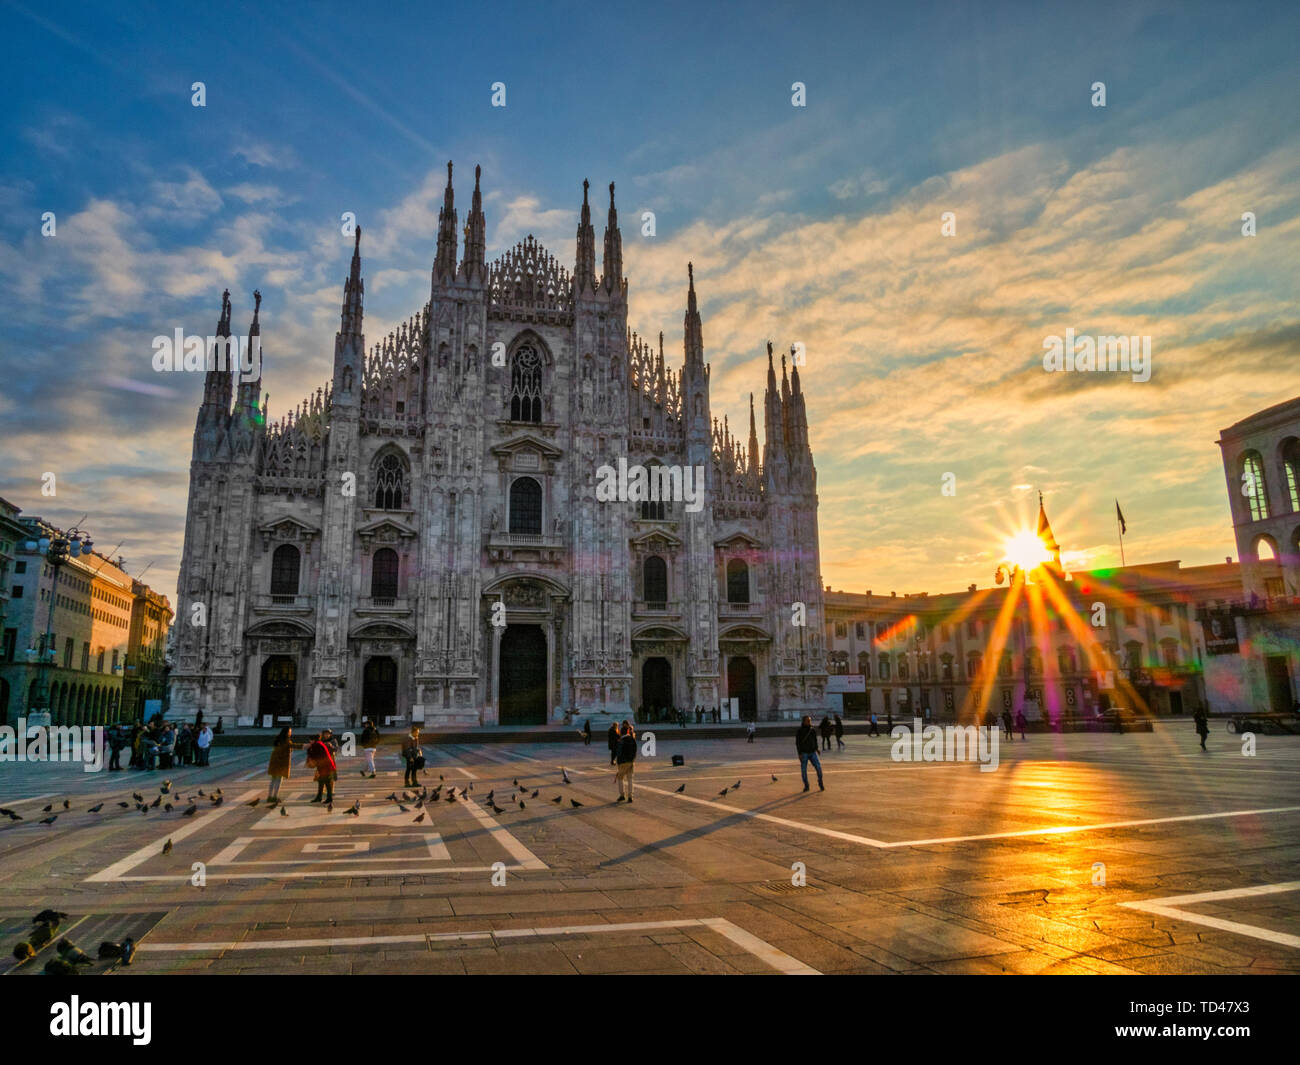 St. Mary of Nativity Cathedral (Duomo) at sunrise, Milan, Lombardy, Italy, Europe - Stock Image